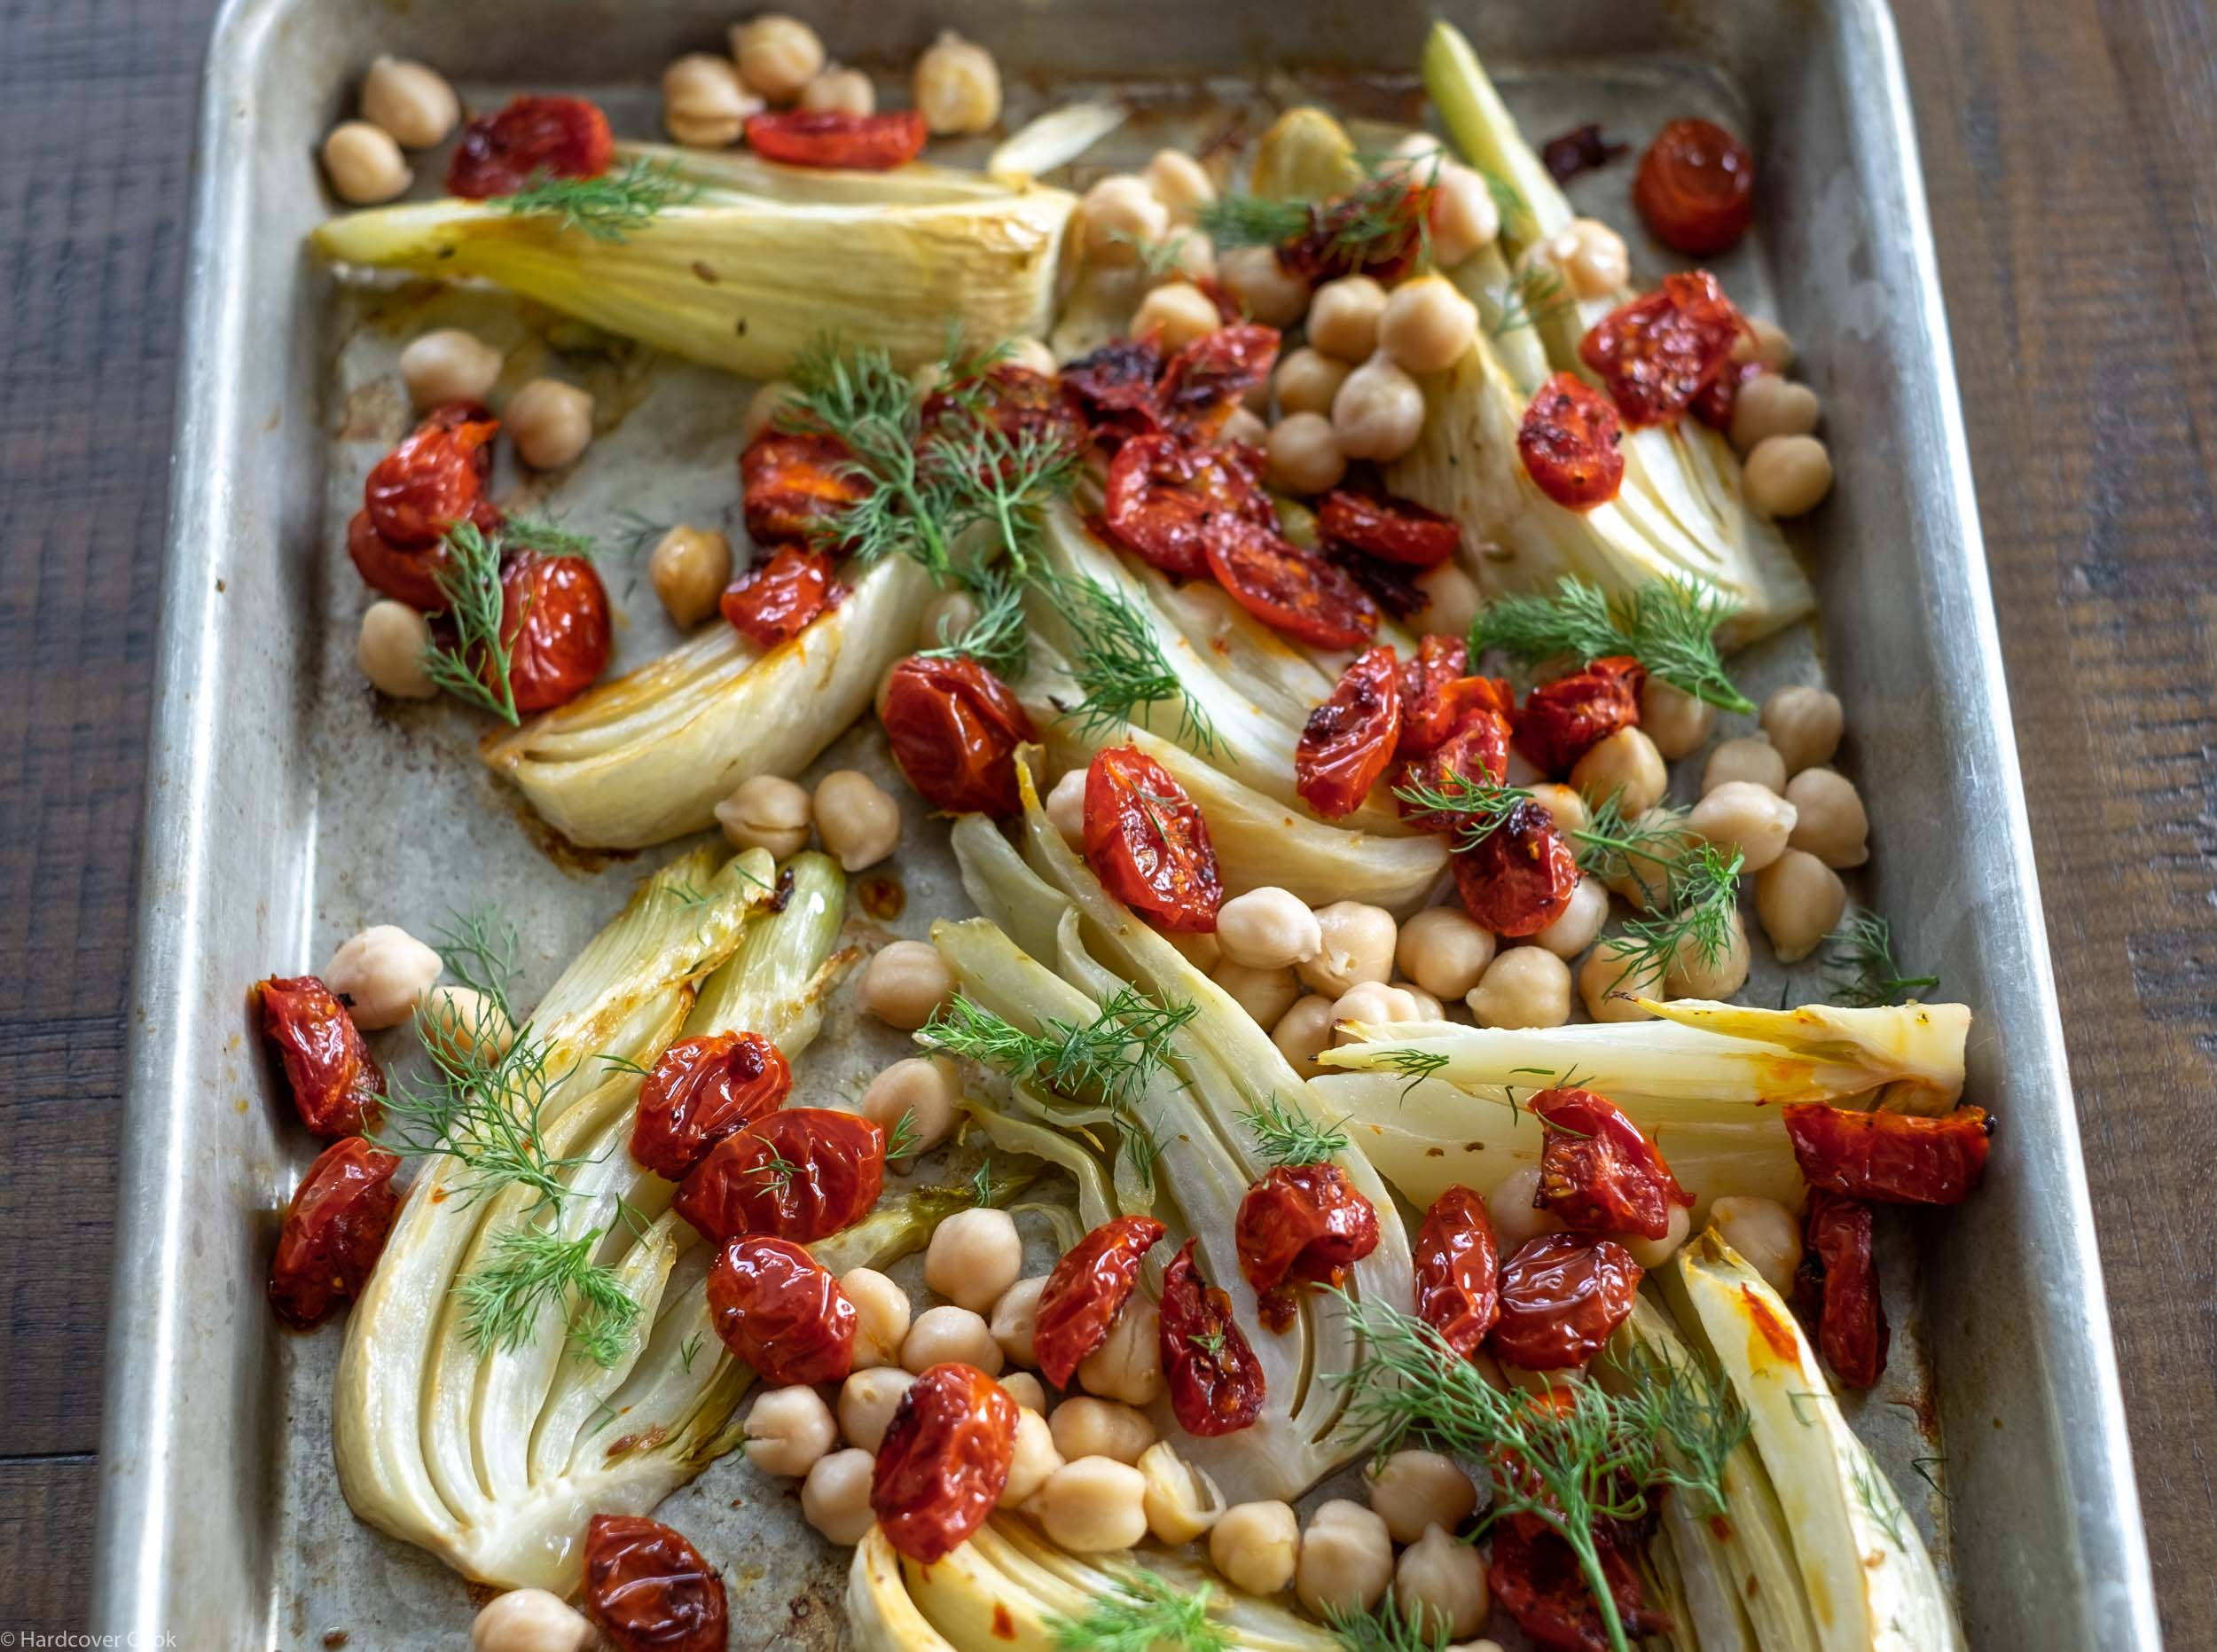 Roasted Tomatoes, Fennel & Chickpeas with Preserved Lemon & Honey from How to Eat a Peach